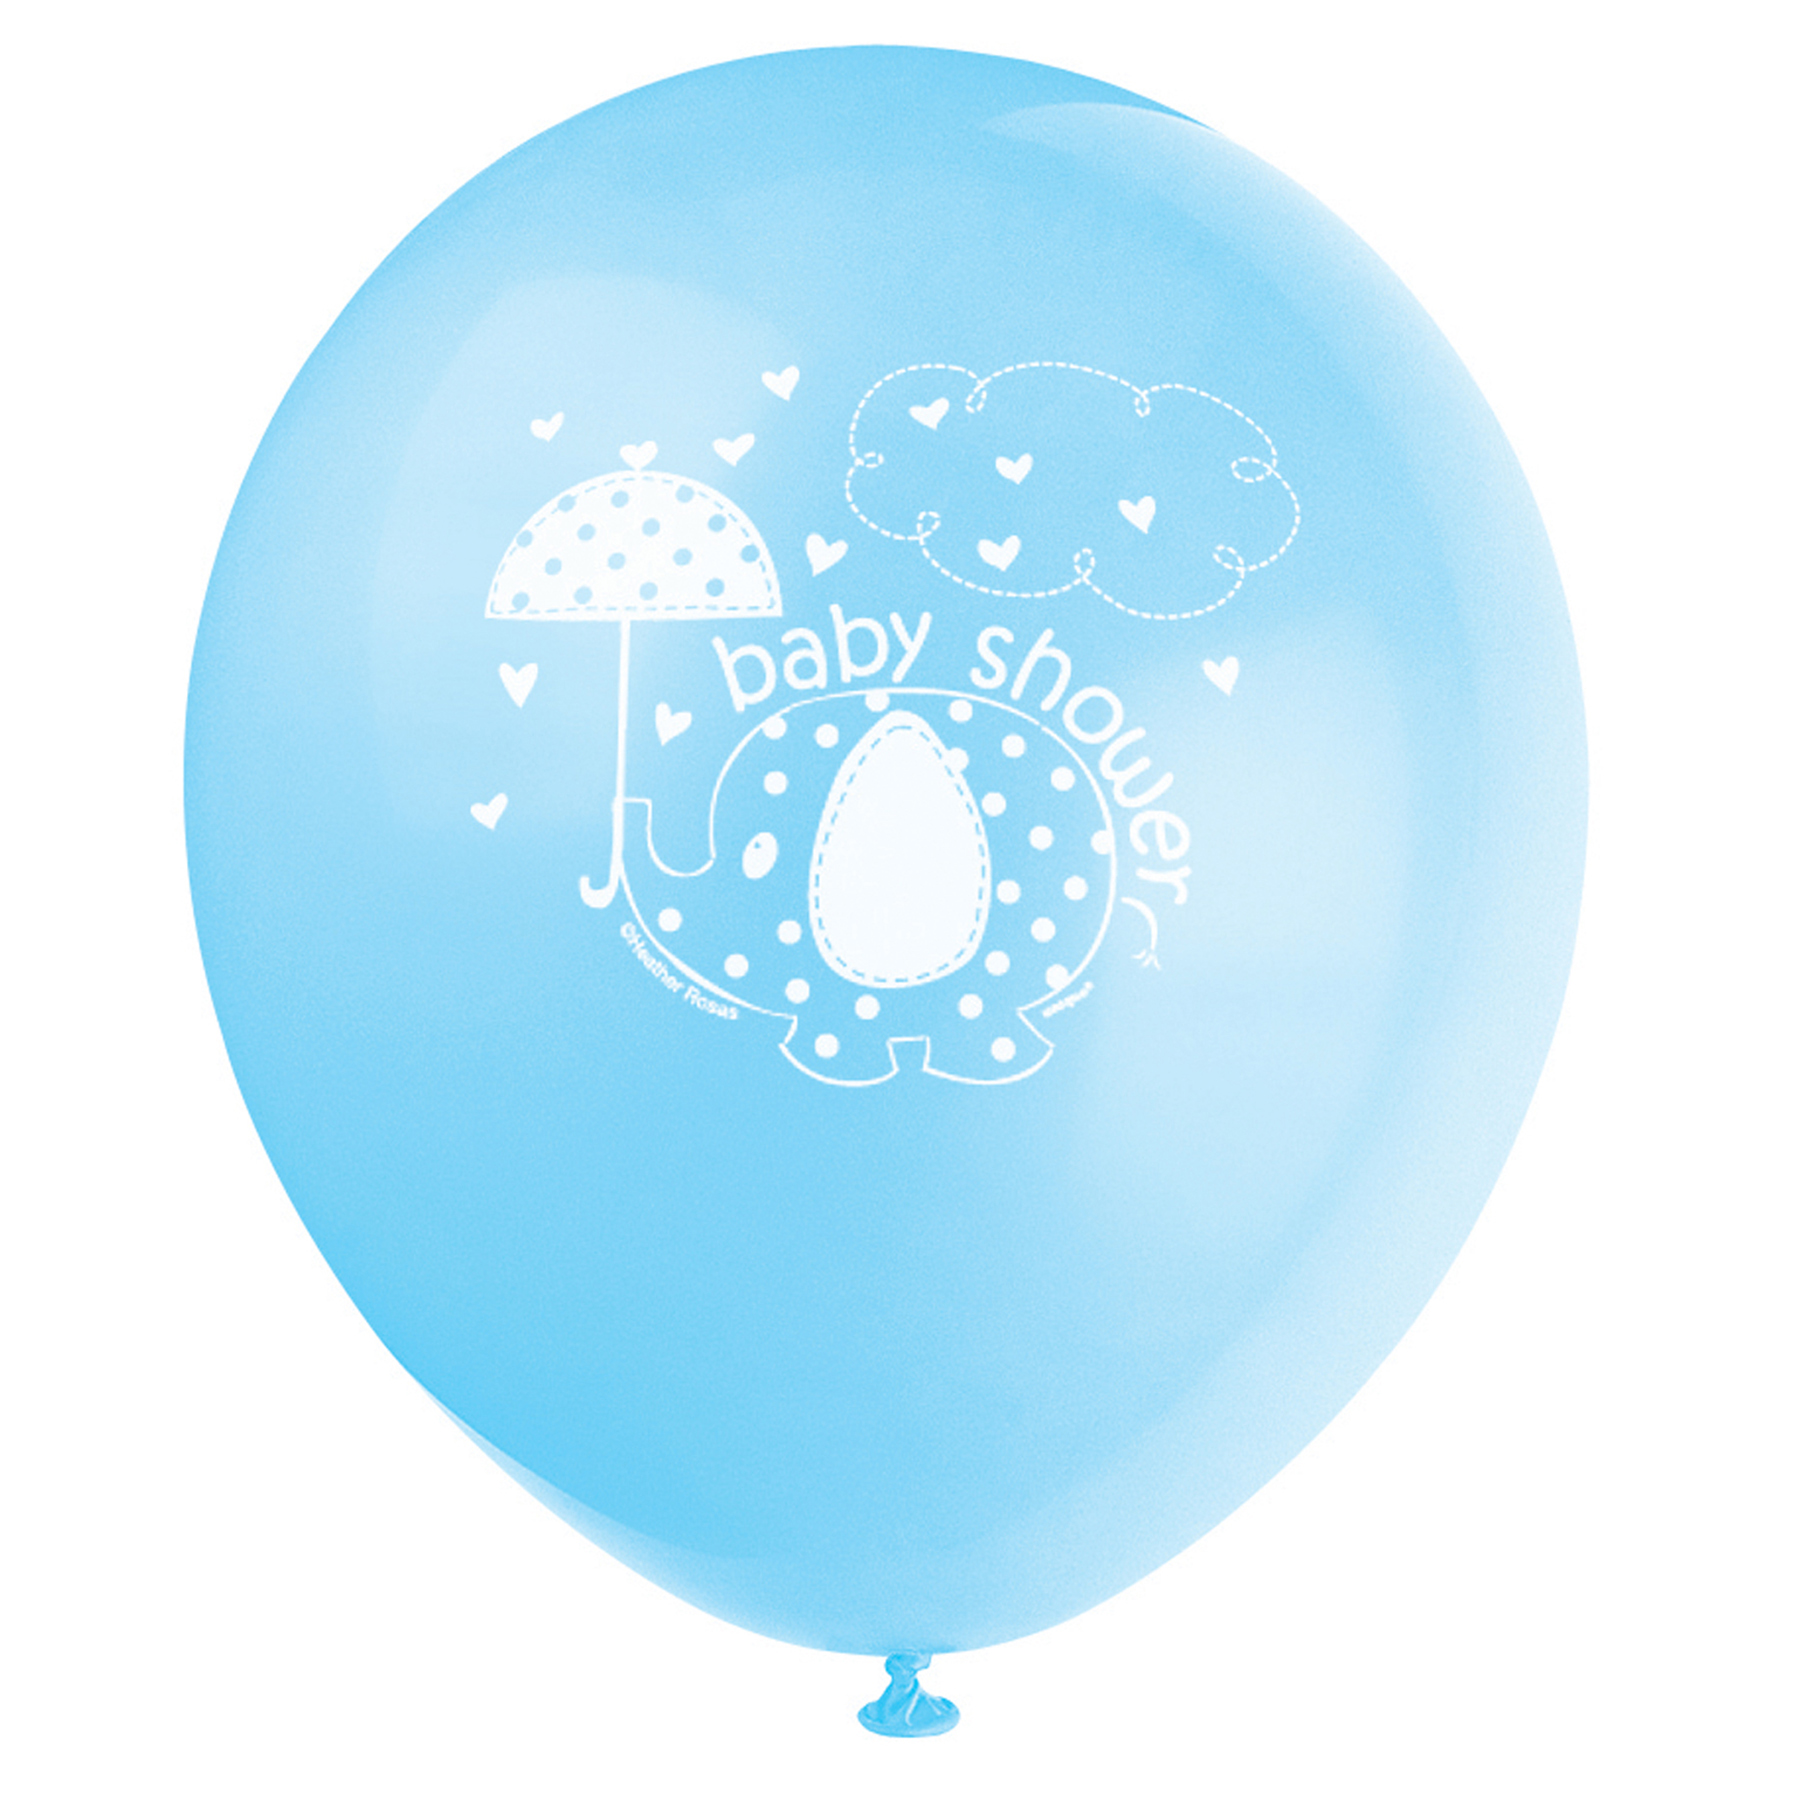 Baby Shower Elephant Images | Free download best Baby Shower ...